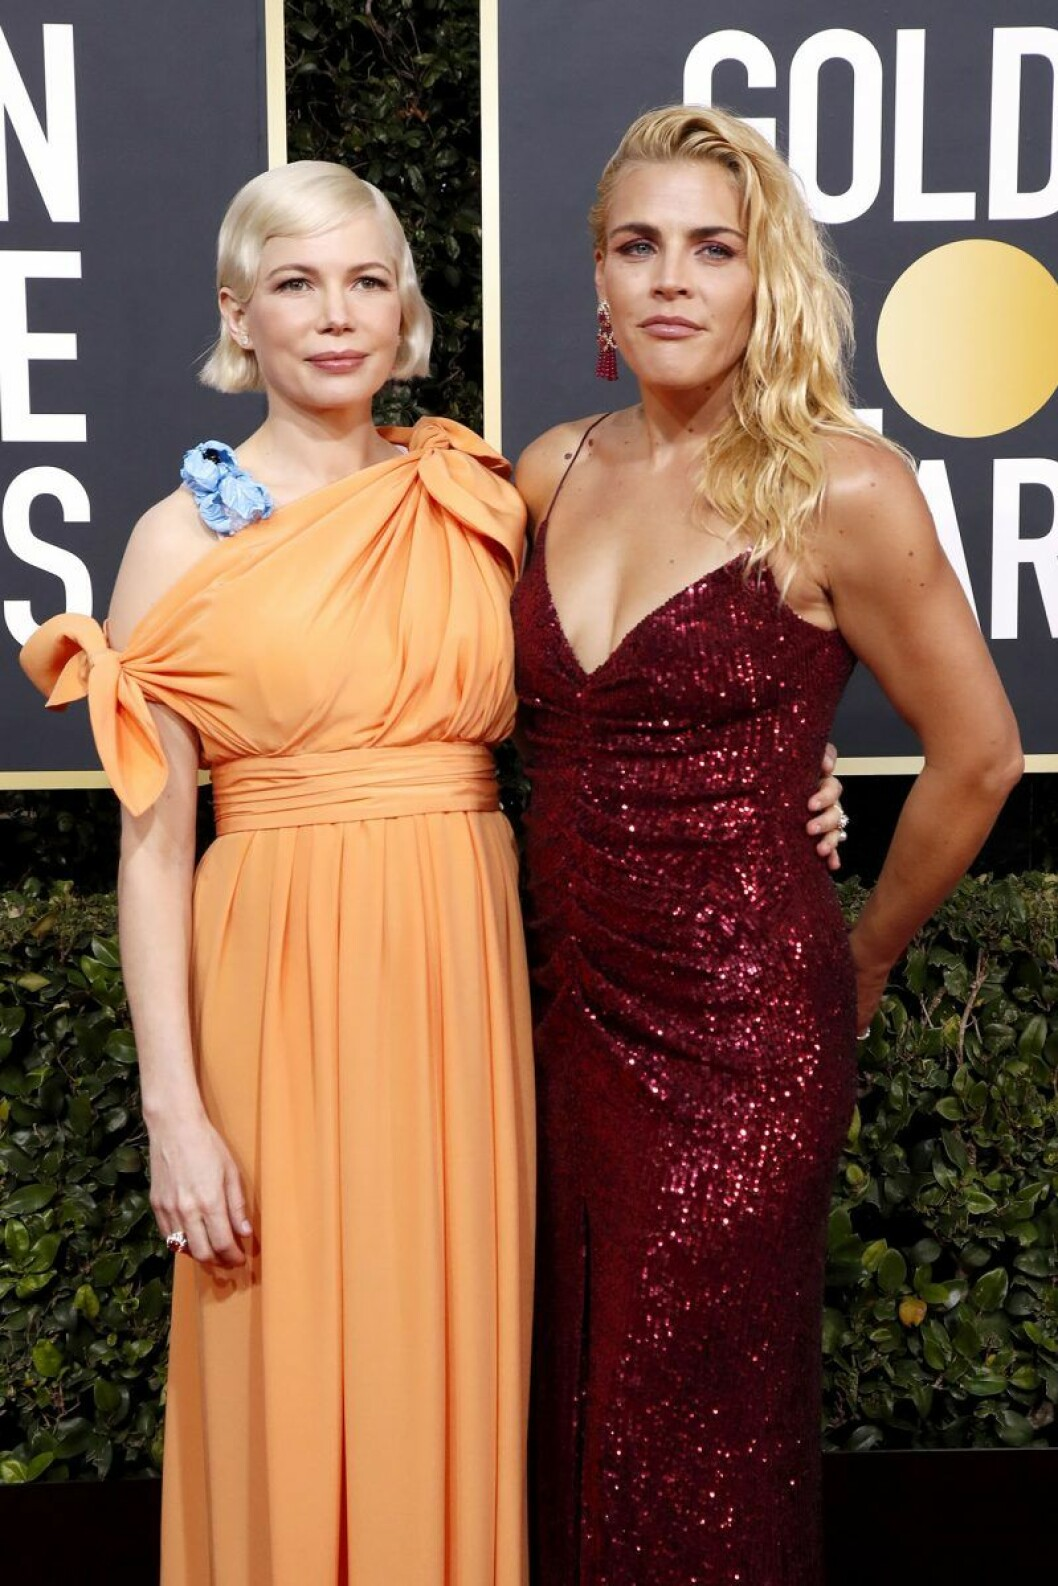 Michelle Williams och Busy Philipps på Golden Globes.